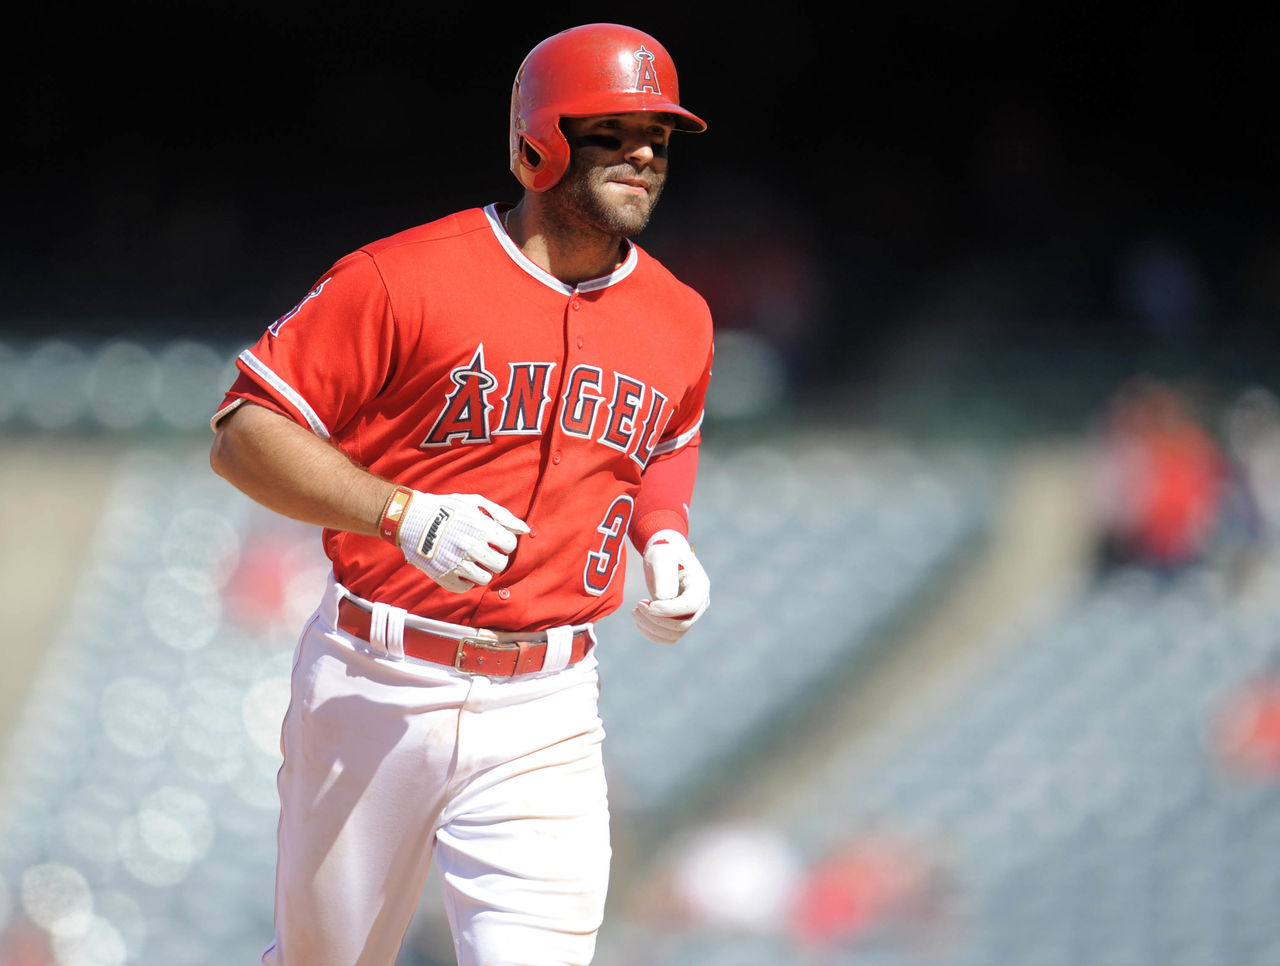 Cropped 2017 04 13t230844z 120054473 nocid rtrmadp 3 mlb texas rangers at los angeles angels